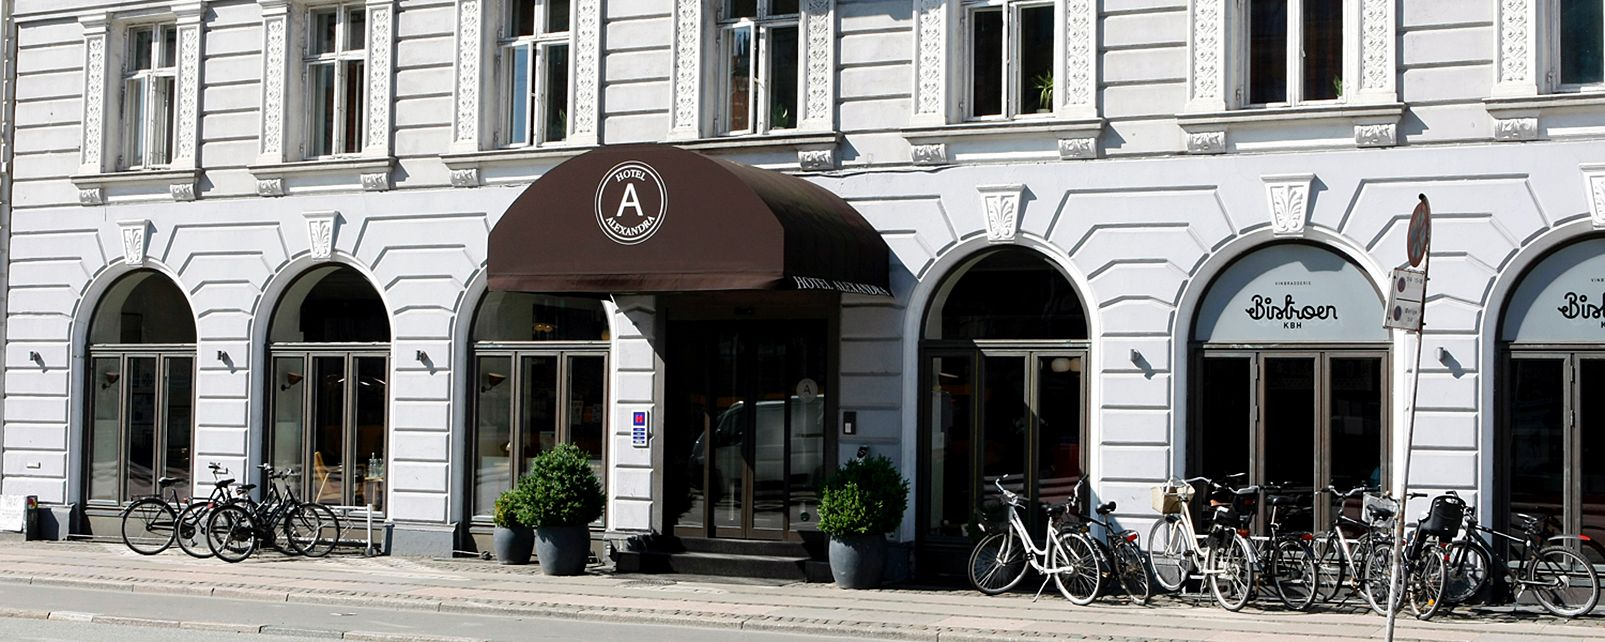 hotel alexandra in copenhagen denmark. Black Bedroom Furniture Sets. Home Design Ideas